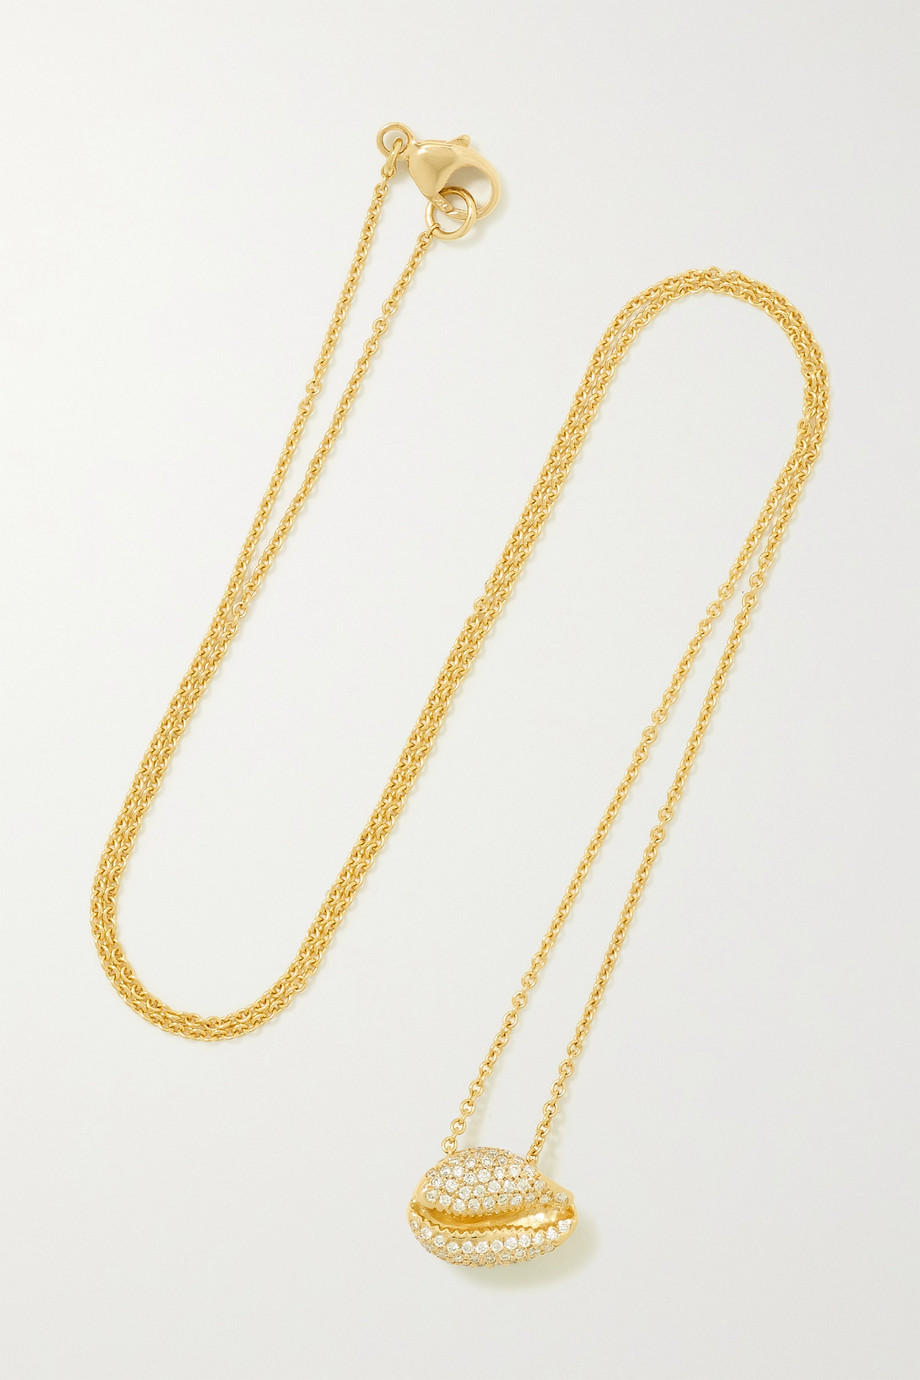 ALMASIKA Le Petit Cauri 18-karat gold diamond necklace